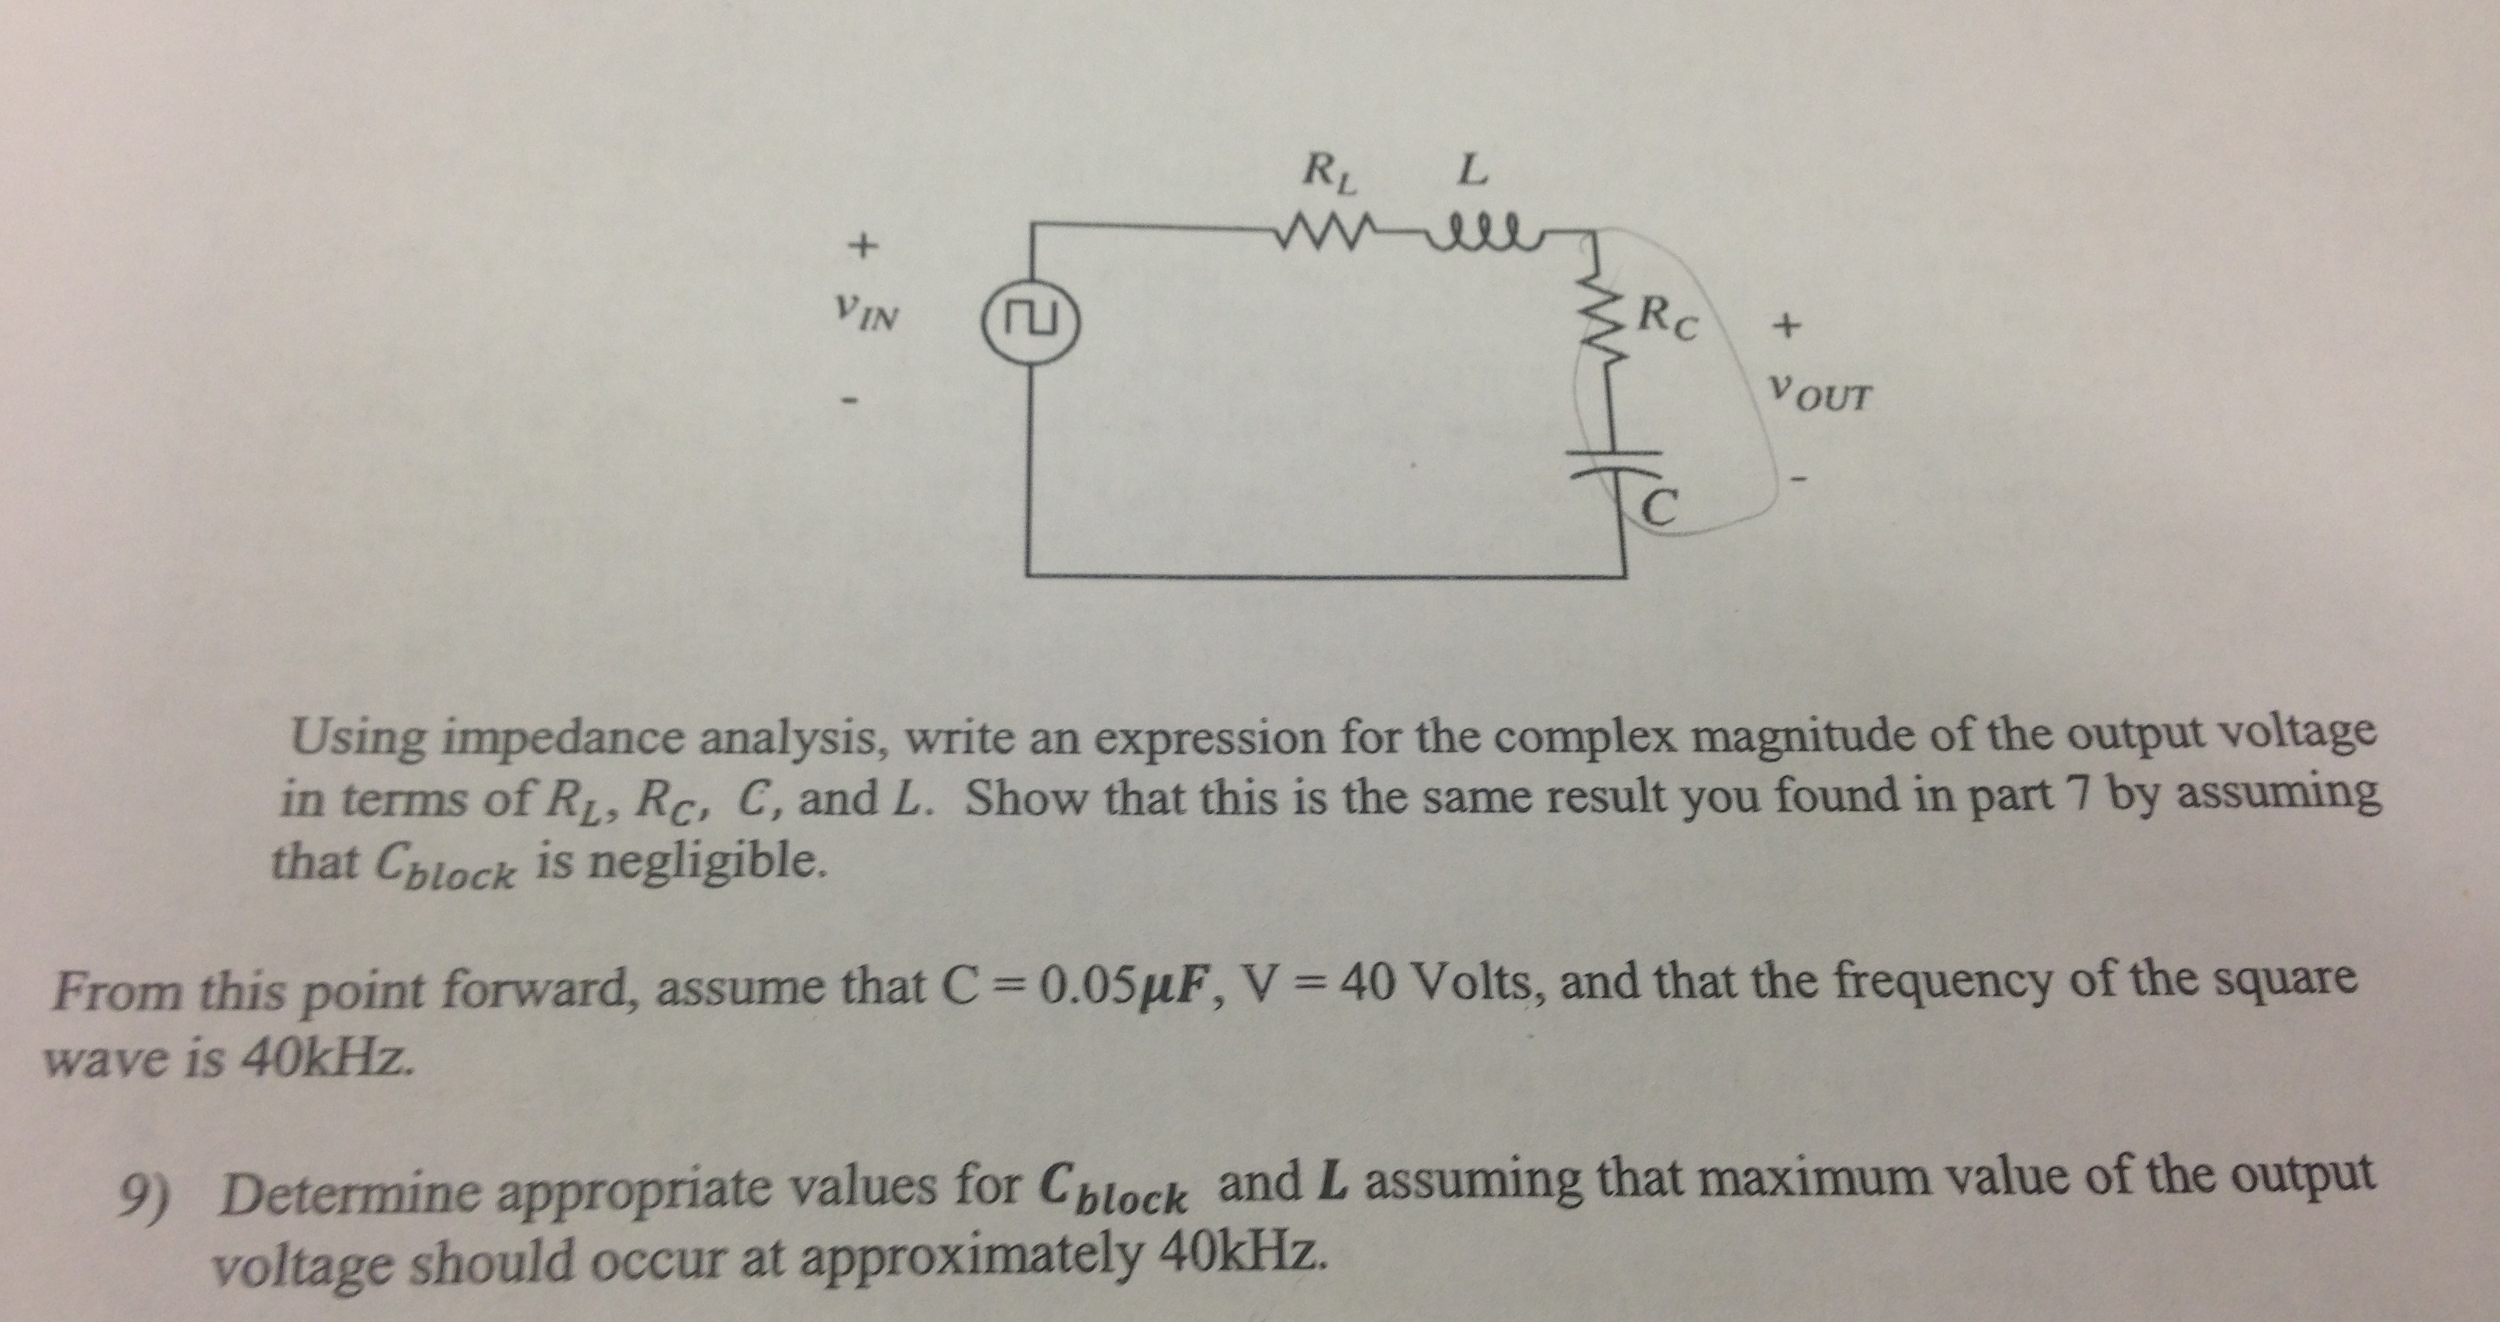 Using impedance analysis, write an expression for